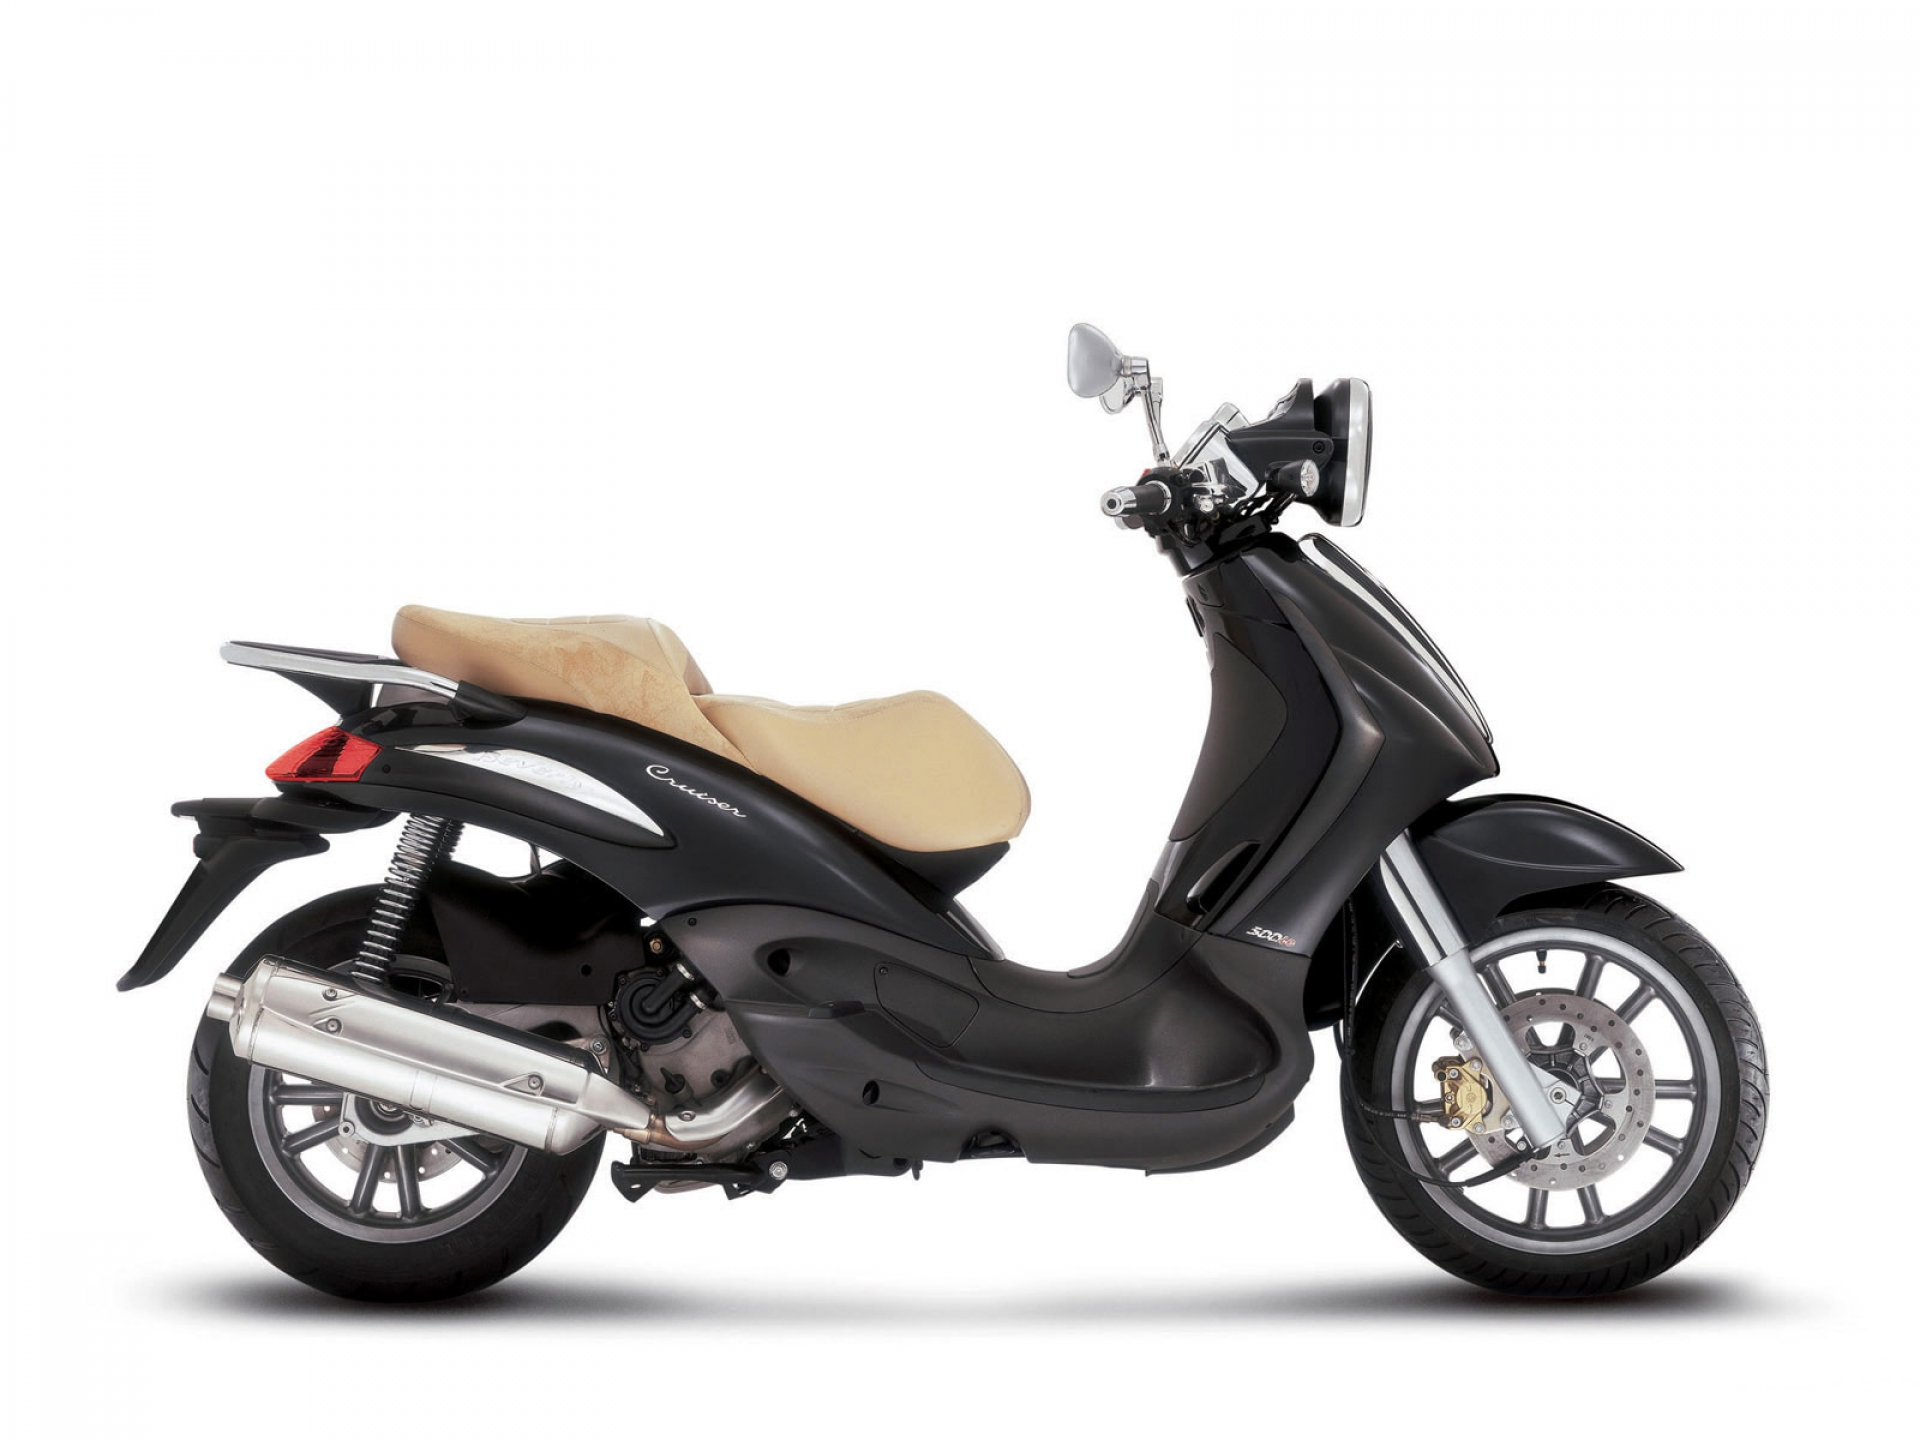 2006 piaggio beverly 500 moto zombdrive com. Black Bedroom Furniture Sets. Home Design Ideas